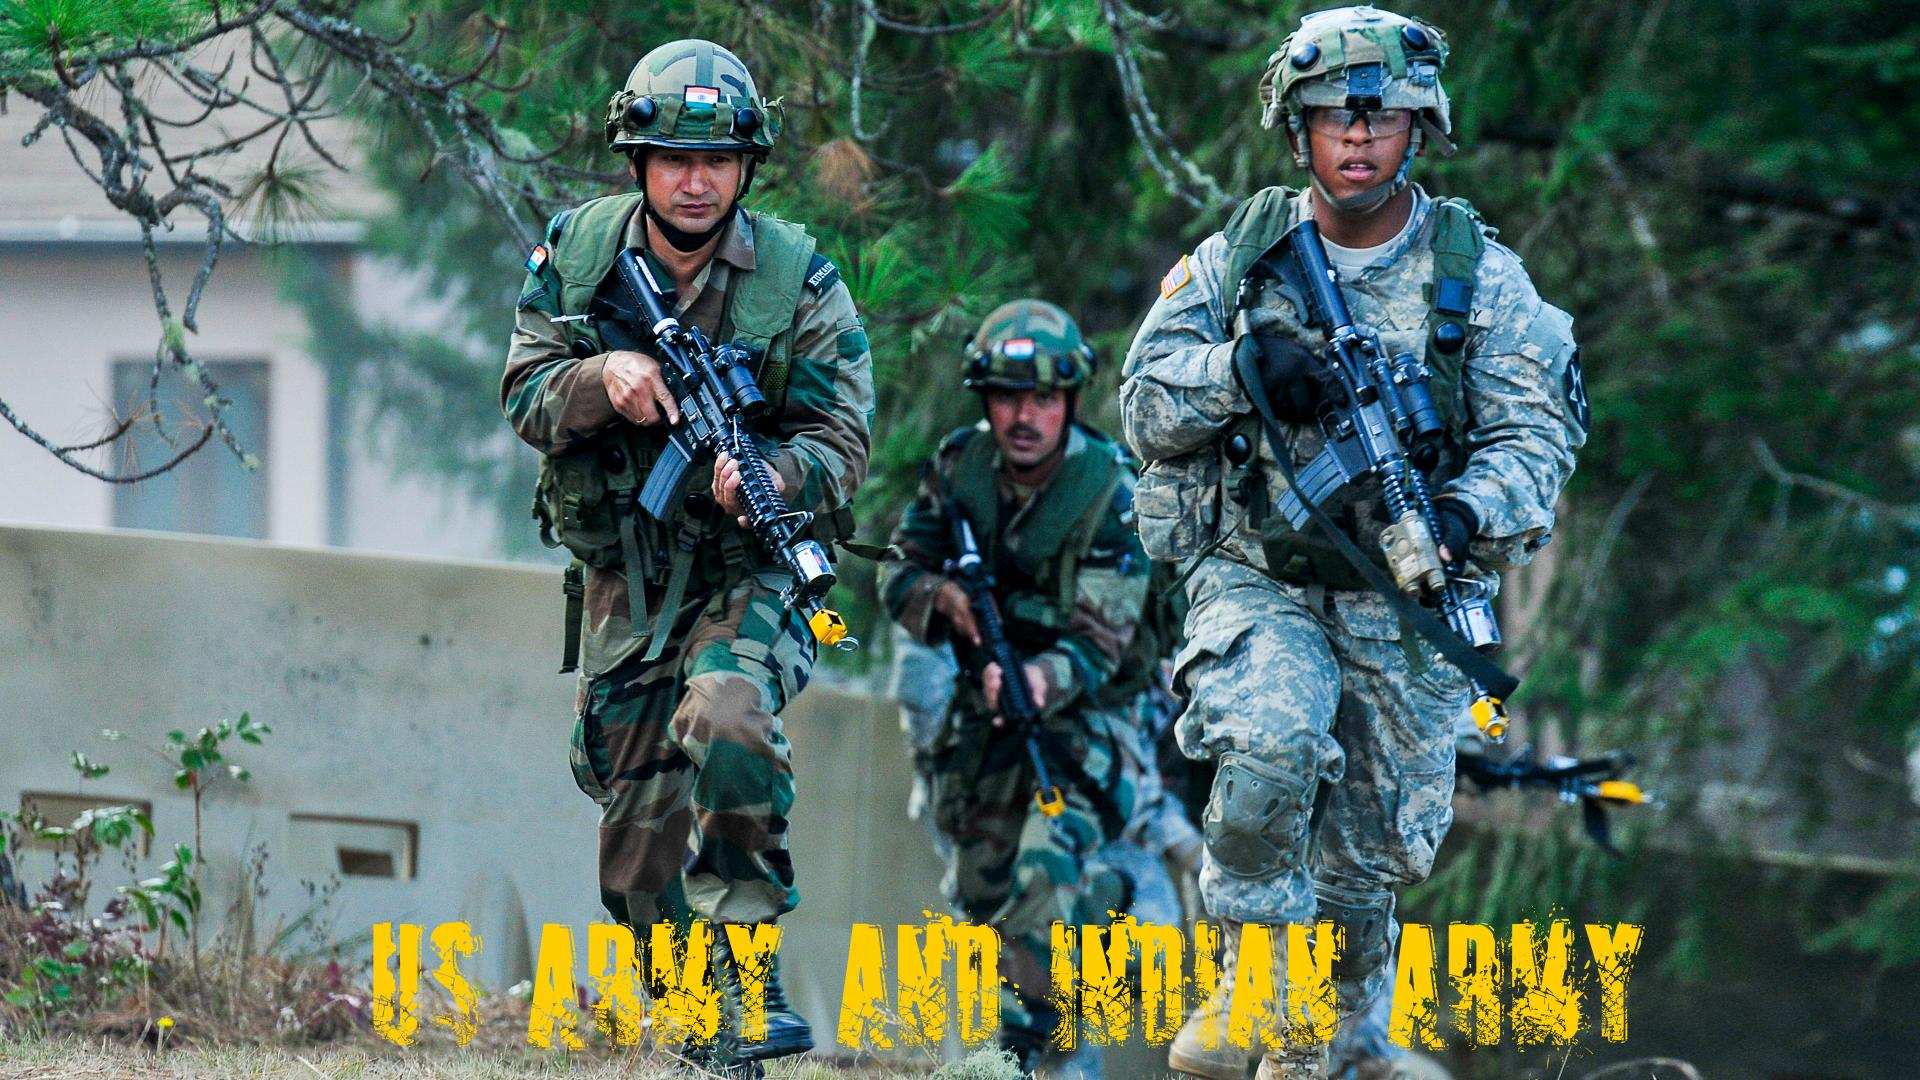 Indian Army Hd Wallpaper: Indian Army And US Army Wallpaper